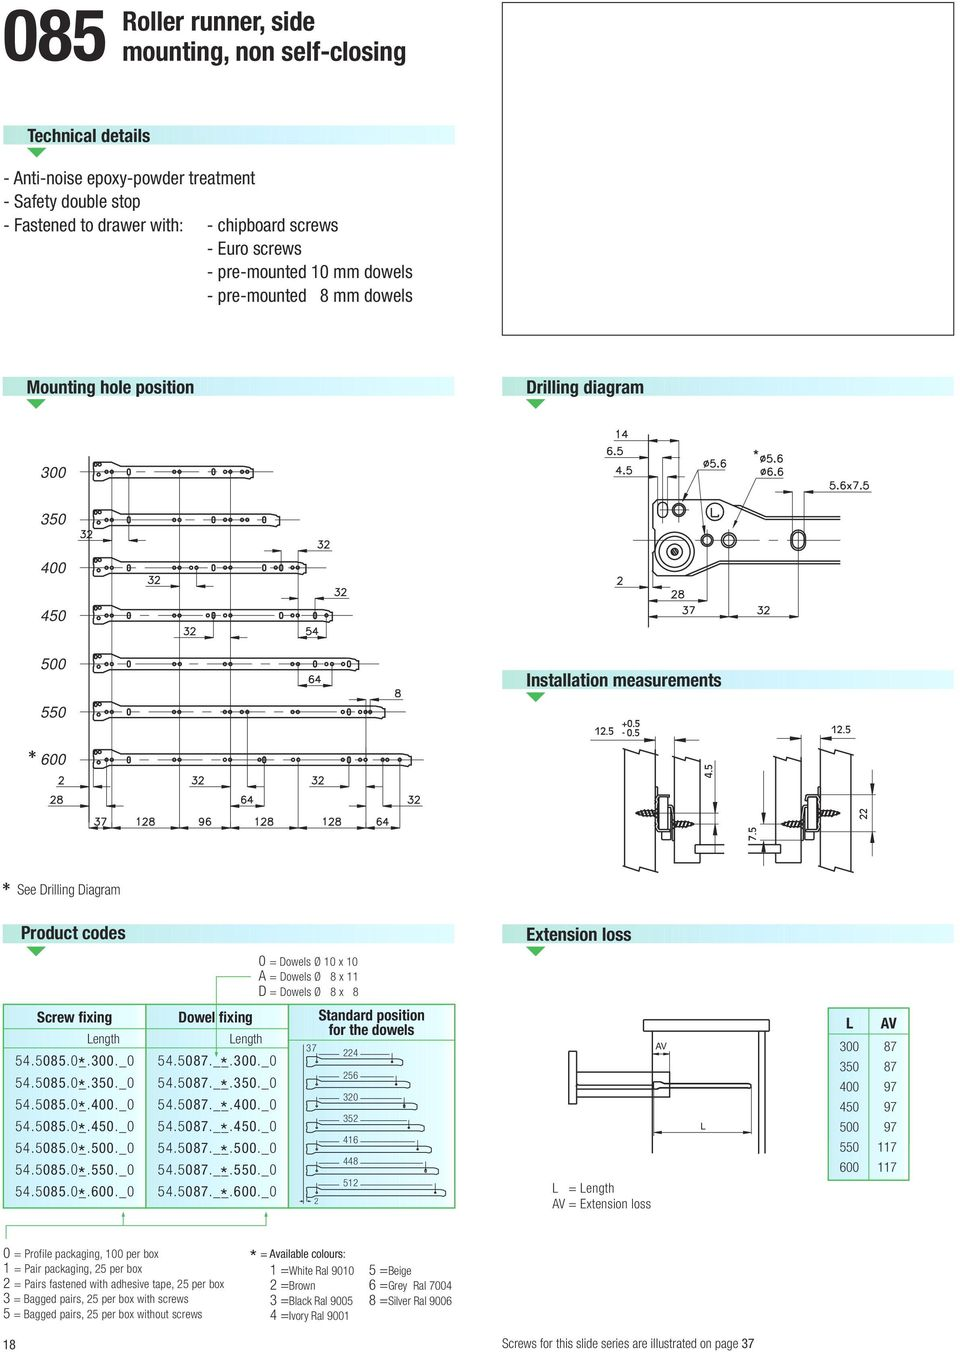 5 See Drilling Diagram Product codes Extension loss 0 = Dowels Ø 10 x 10 A = Dowels Ø 8 x 11 D = Dowels Ø 8 x 8 Screw fixing 54.5085.0_.._0 54.5085.0_.._0 54.5085.0_.._0 54.5085.0_.._0 54.5085.0_.._0 54.5085.0_.._0 54.5085.0_.._0 Dowel fixing 54.